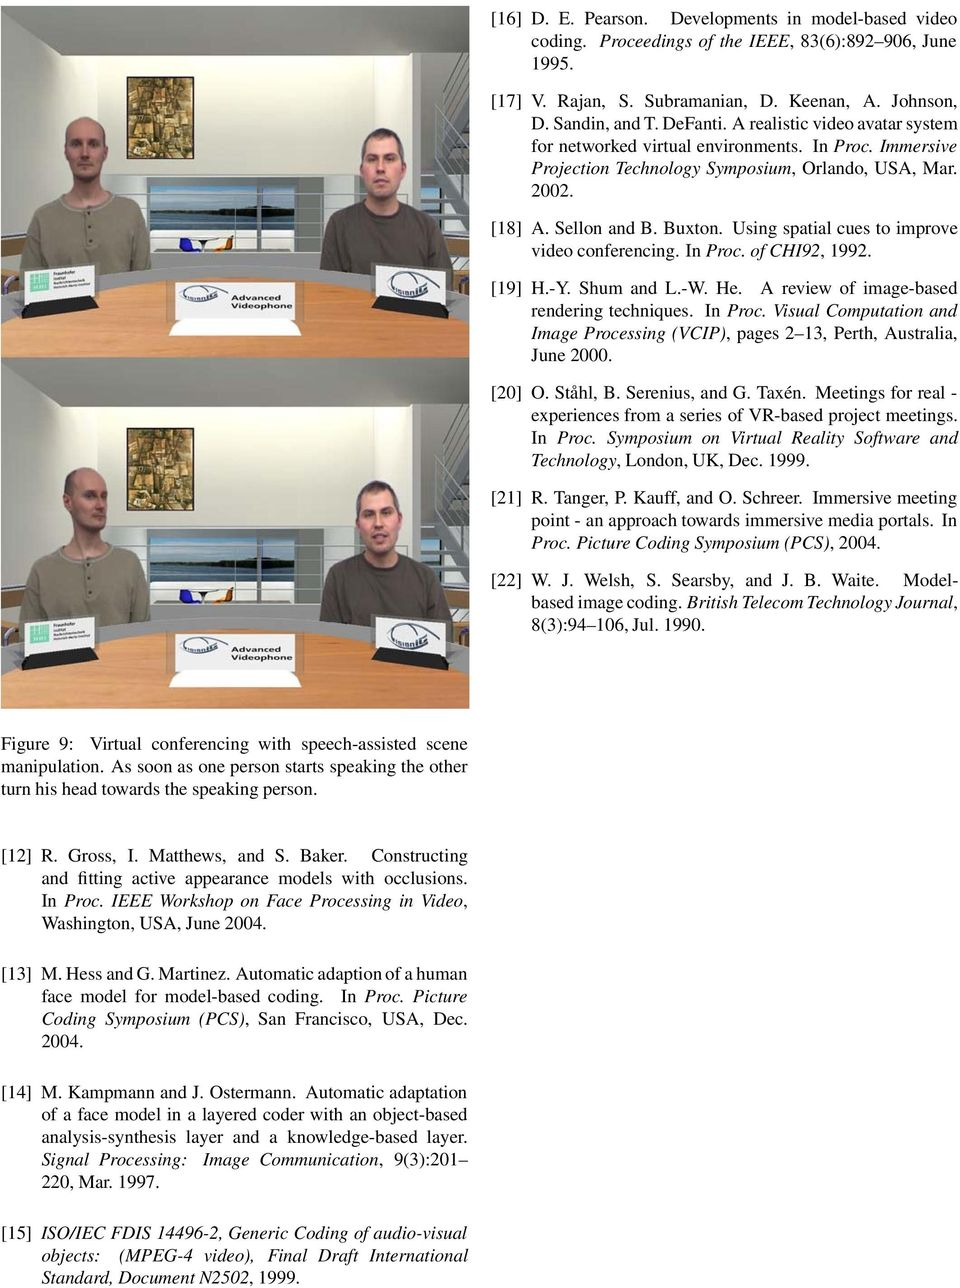 Using spatial cues to improve video conferencing. In Proc. of CHI92, 1992. [19] H.-Y. Shum and L.-W. He. A review of image-based rendering techniques. In Proc. Visual Computation and Image Processing (VCIP), pages 2 13, Perth, Australia, June 2000.